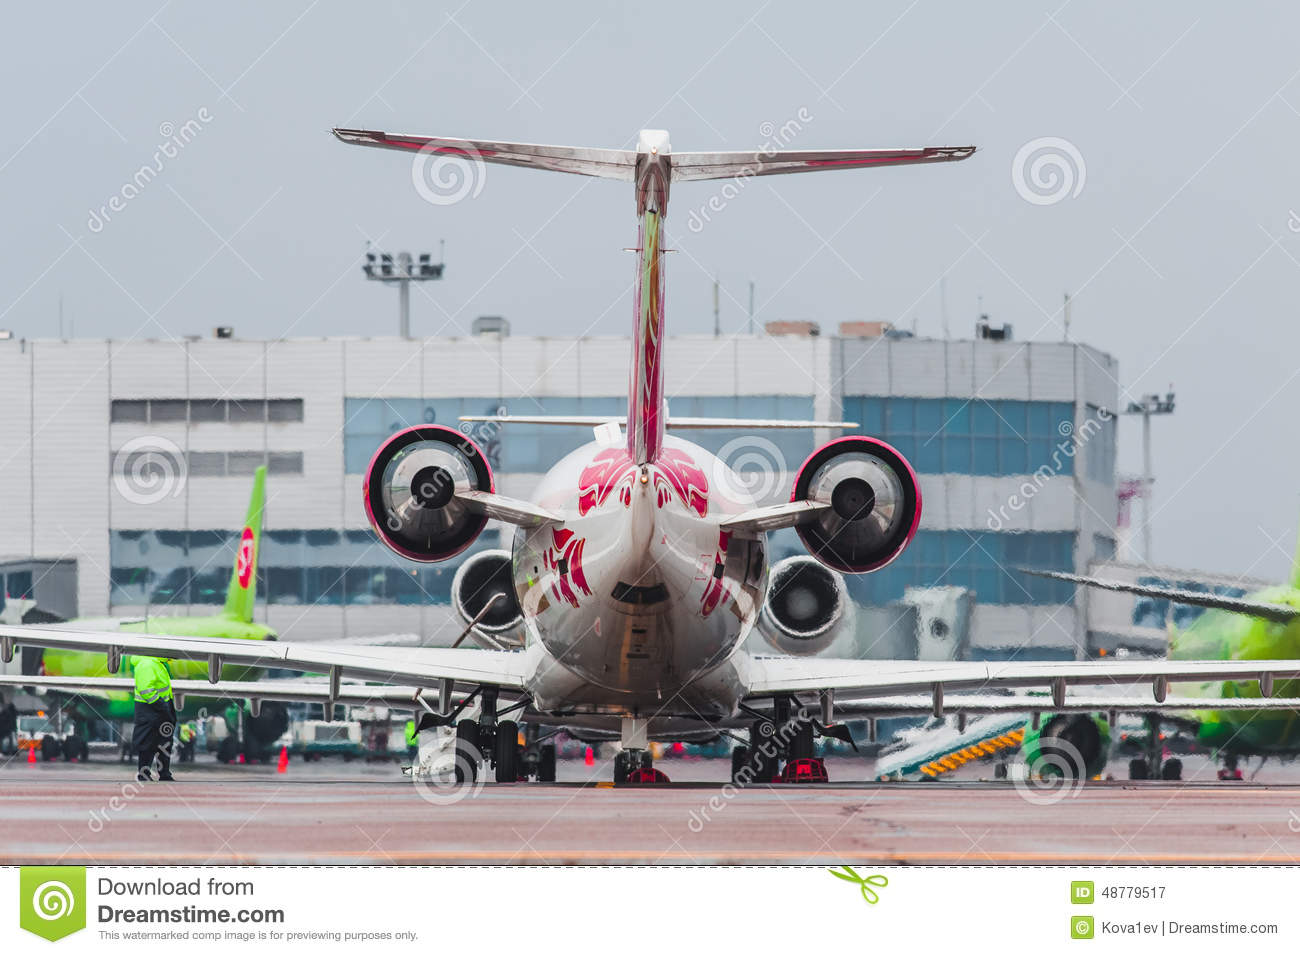 Where in Domodedovo there is cheap parking 96